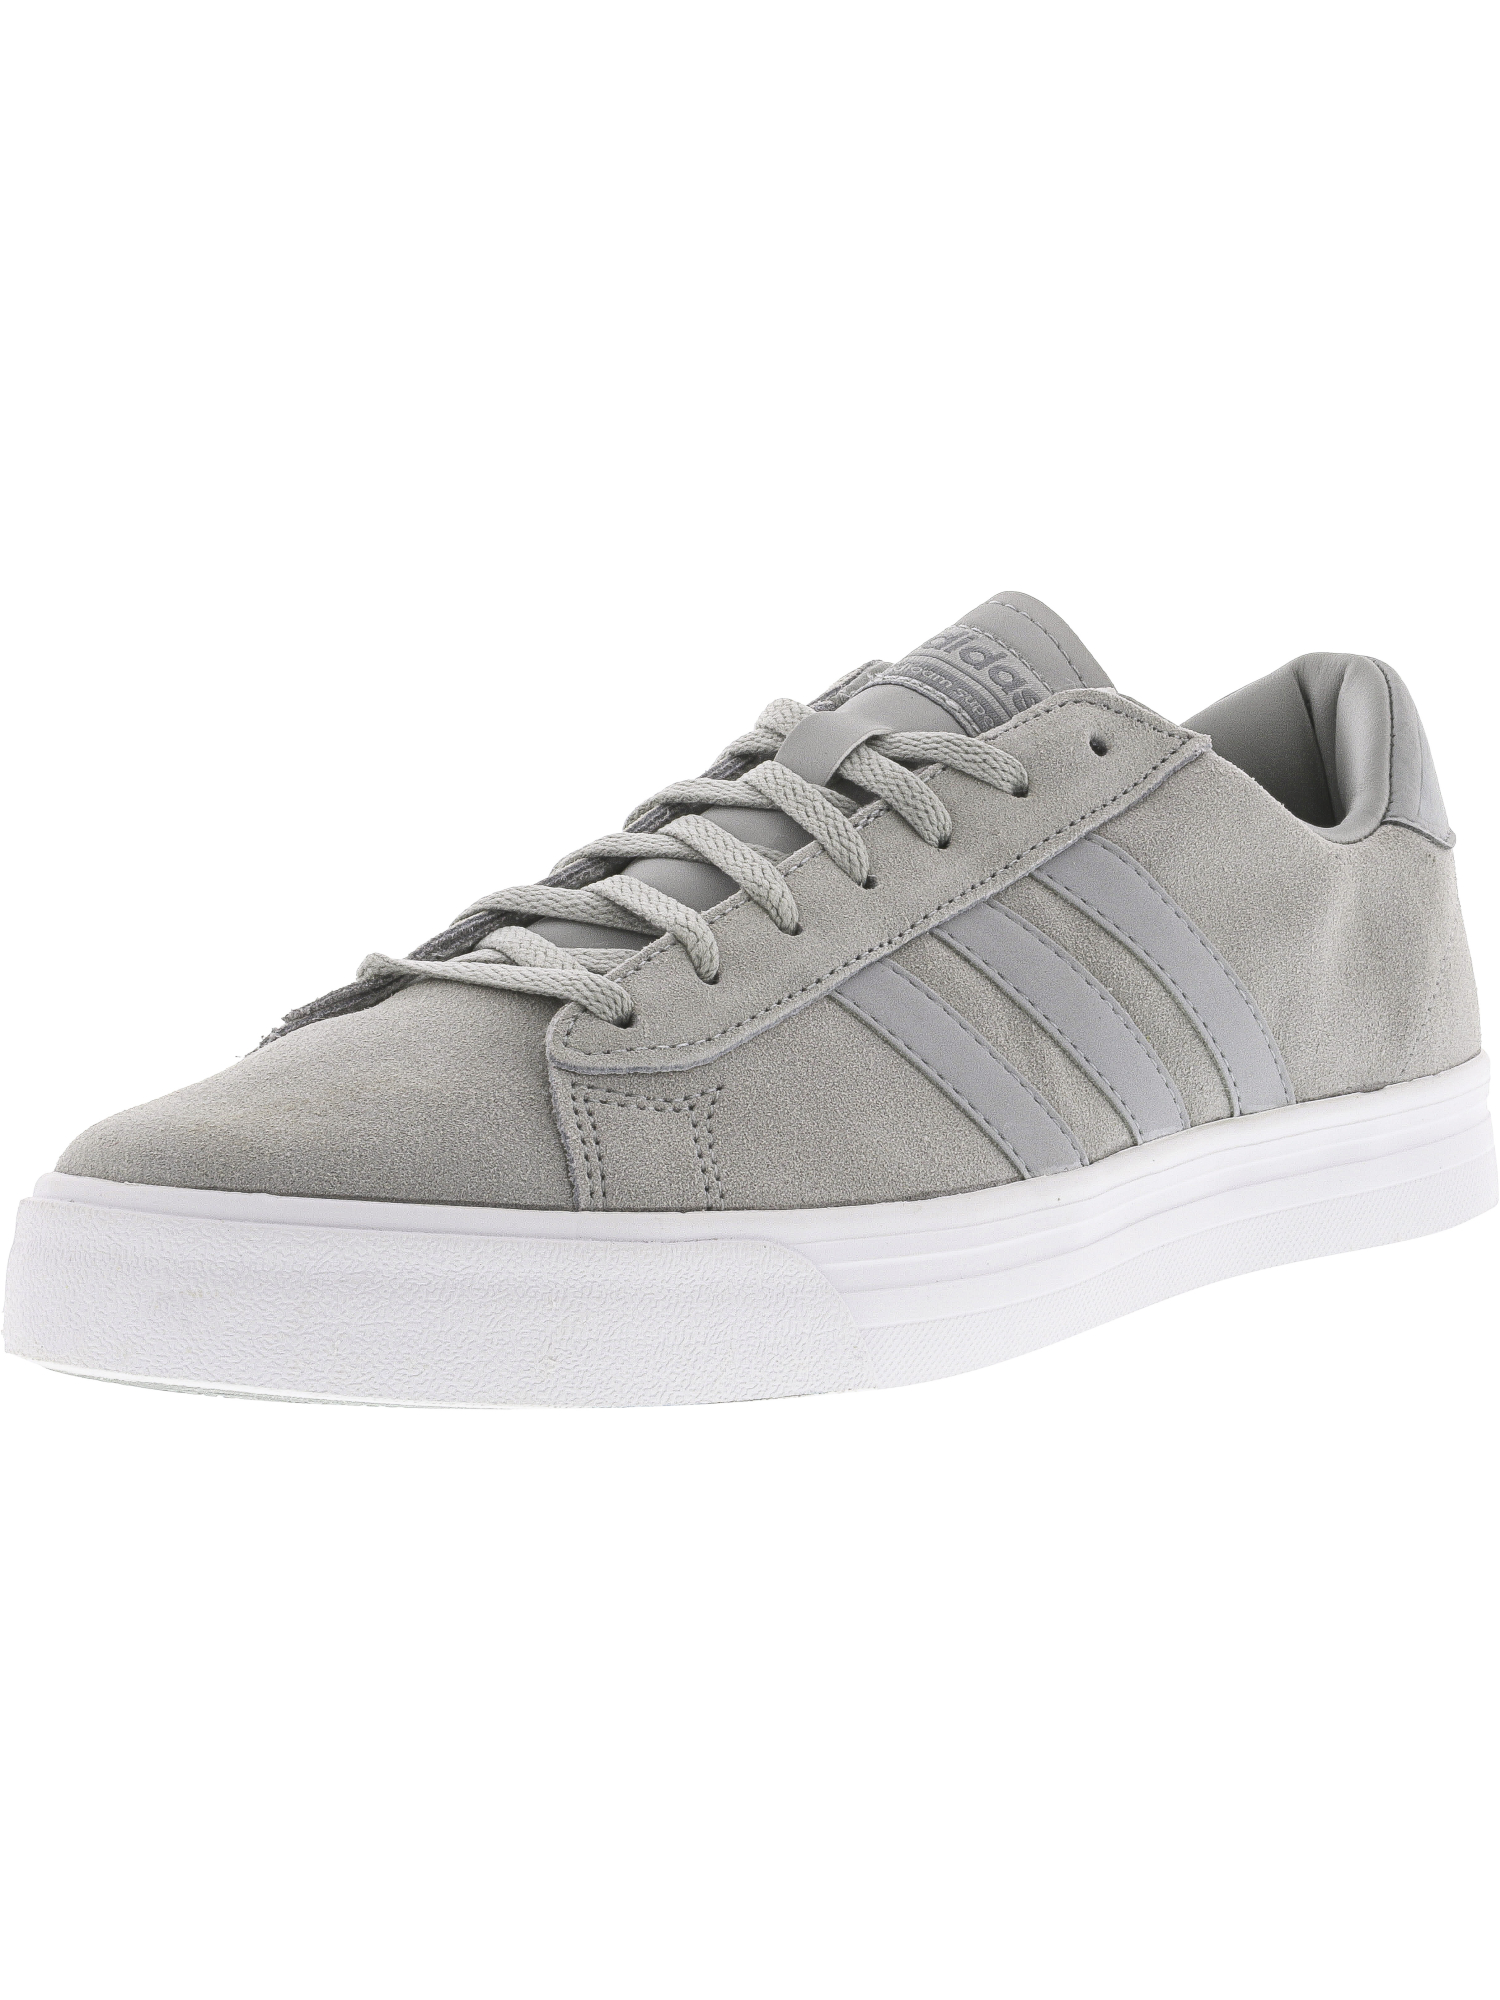 Adidas Men's Cf Super Daily Ankle-High Suede Running Shoe